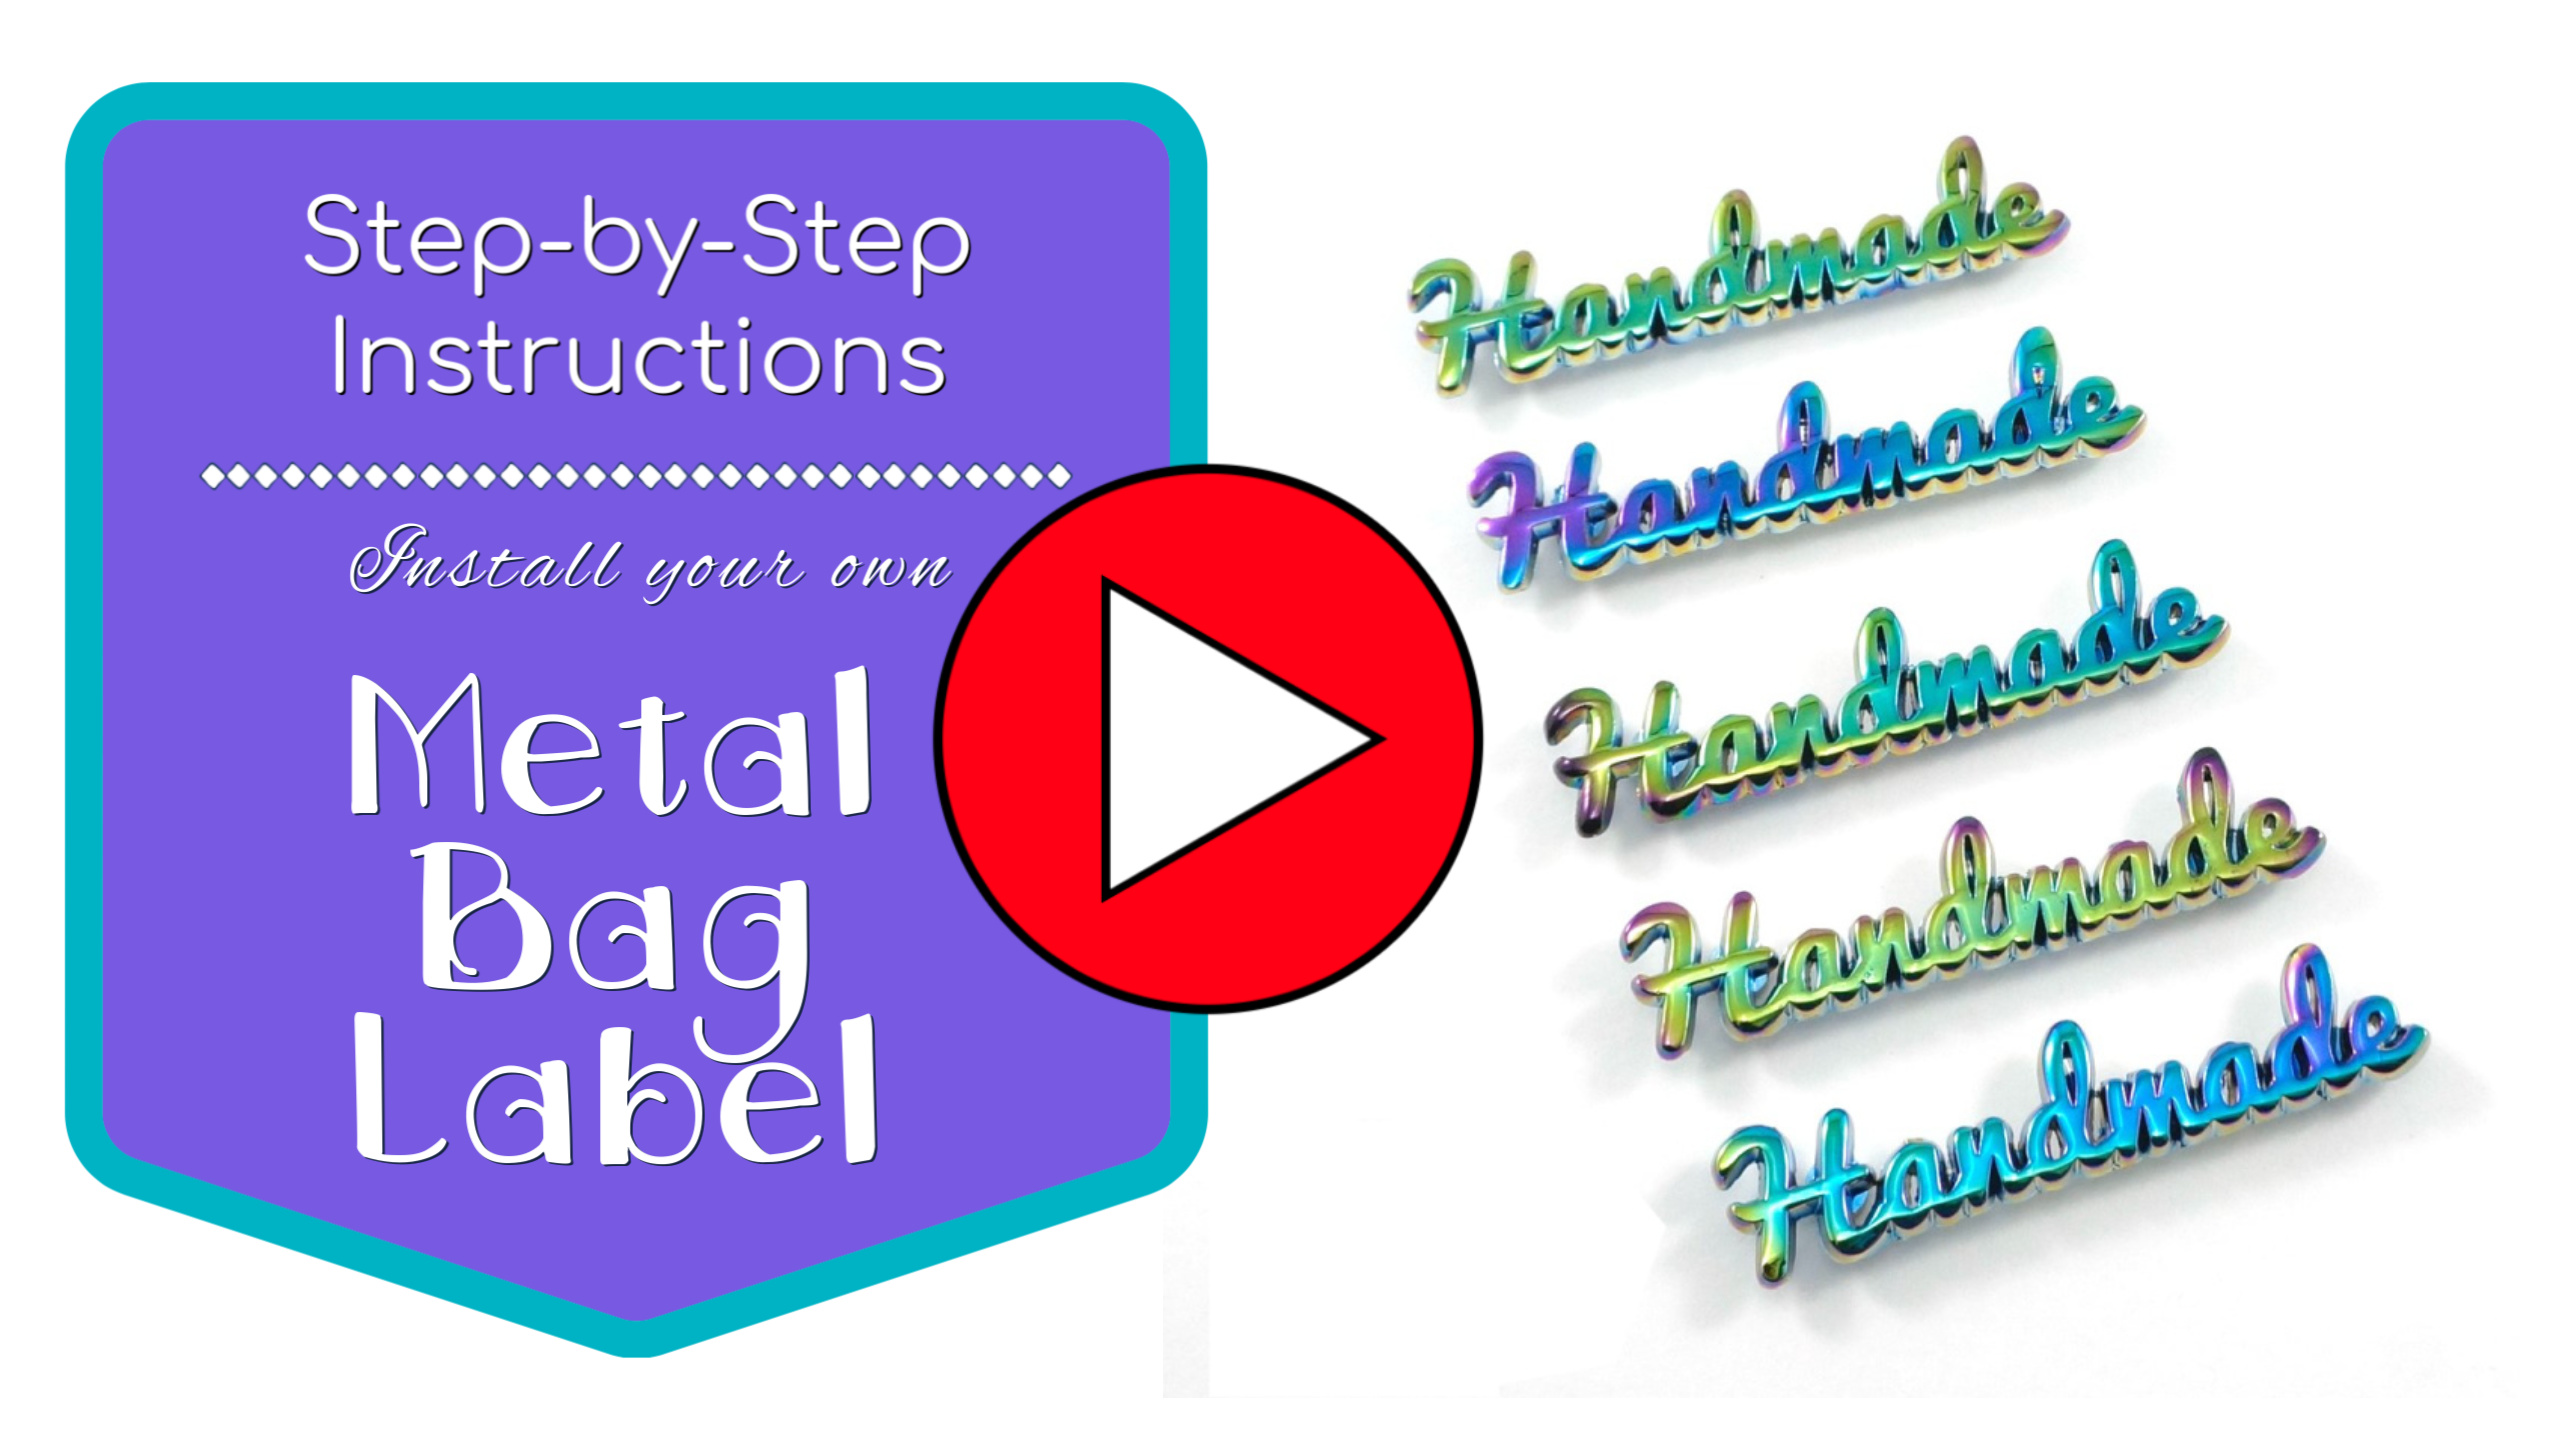 Metal Bag Labels are some of the easiest additions to install into your Handmade Bag, Tote or Purse! Let me show you how to install Metal Bag Labels and you can start adding these to your handmade goodies too! #Sewing #DIY #MetalBagLabels #VideoTutorial #Totes #Bag #Handmade #Designer #Custom #BagHardware #Purses #SewMuchMoore #SewMuchMooreInStore